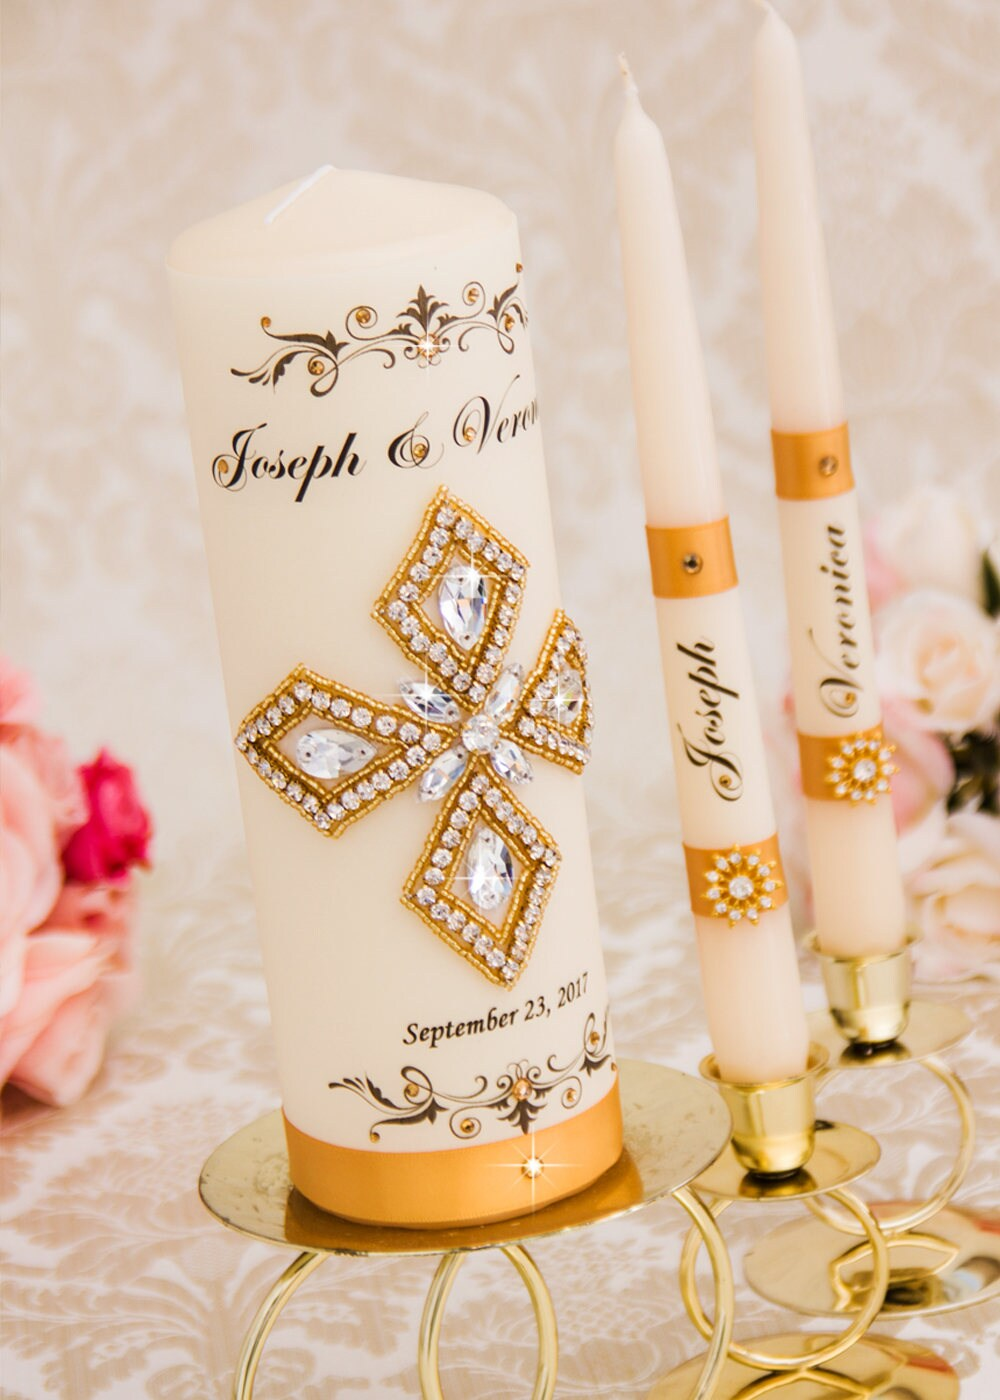 Gold Wedding Unity Candle Set Personalized Candles Church Ceremony